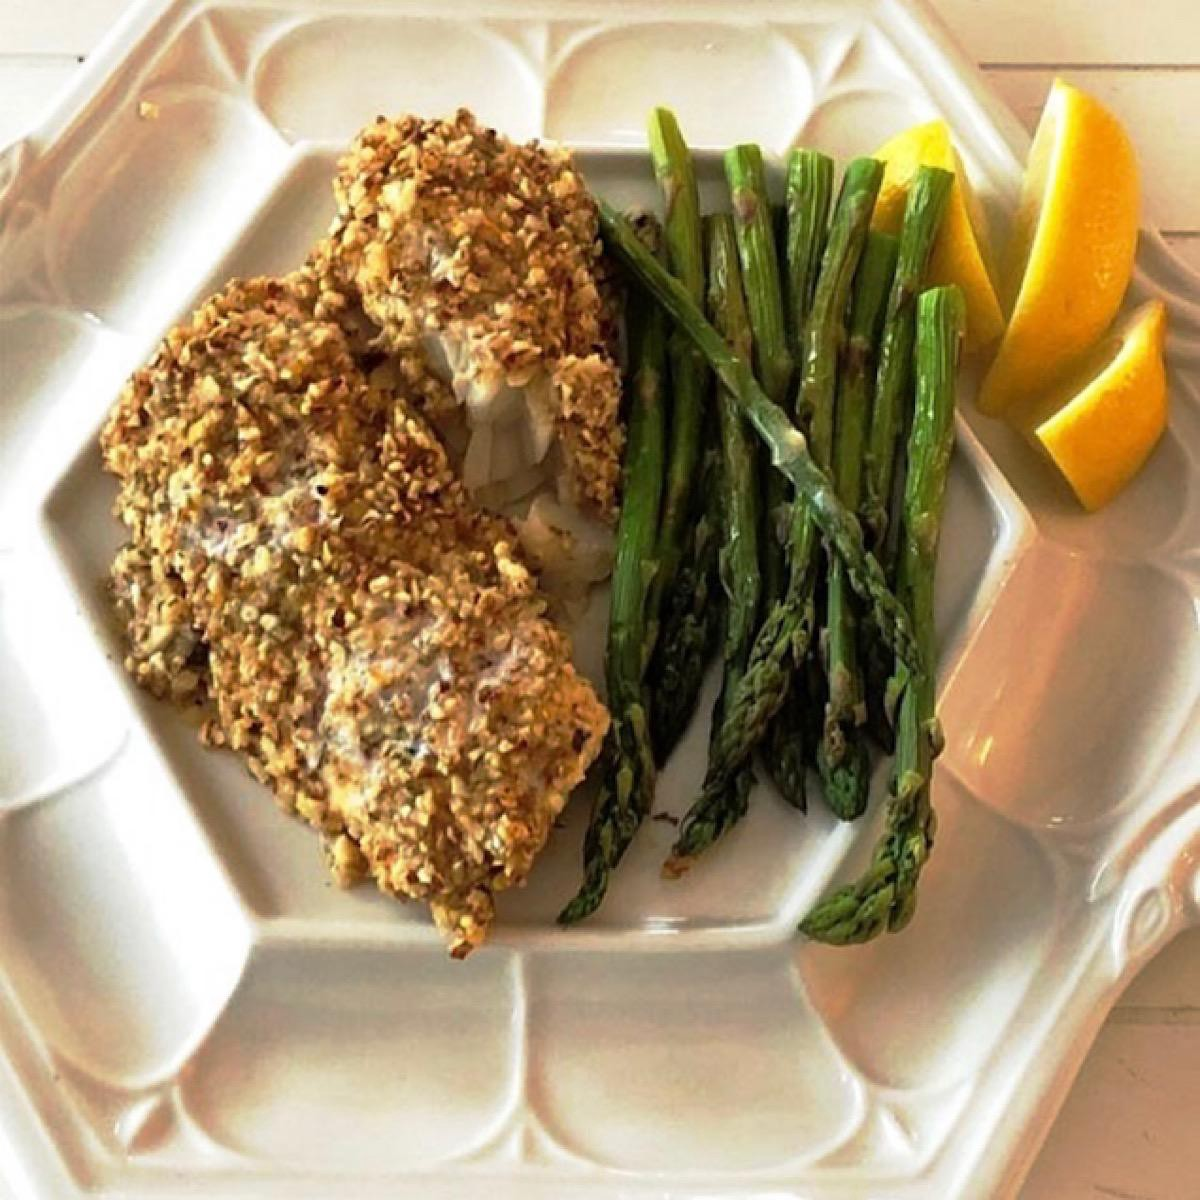 Fish with asparagus on a dinner plate.